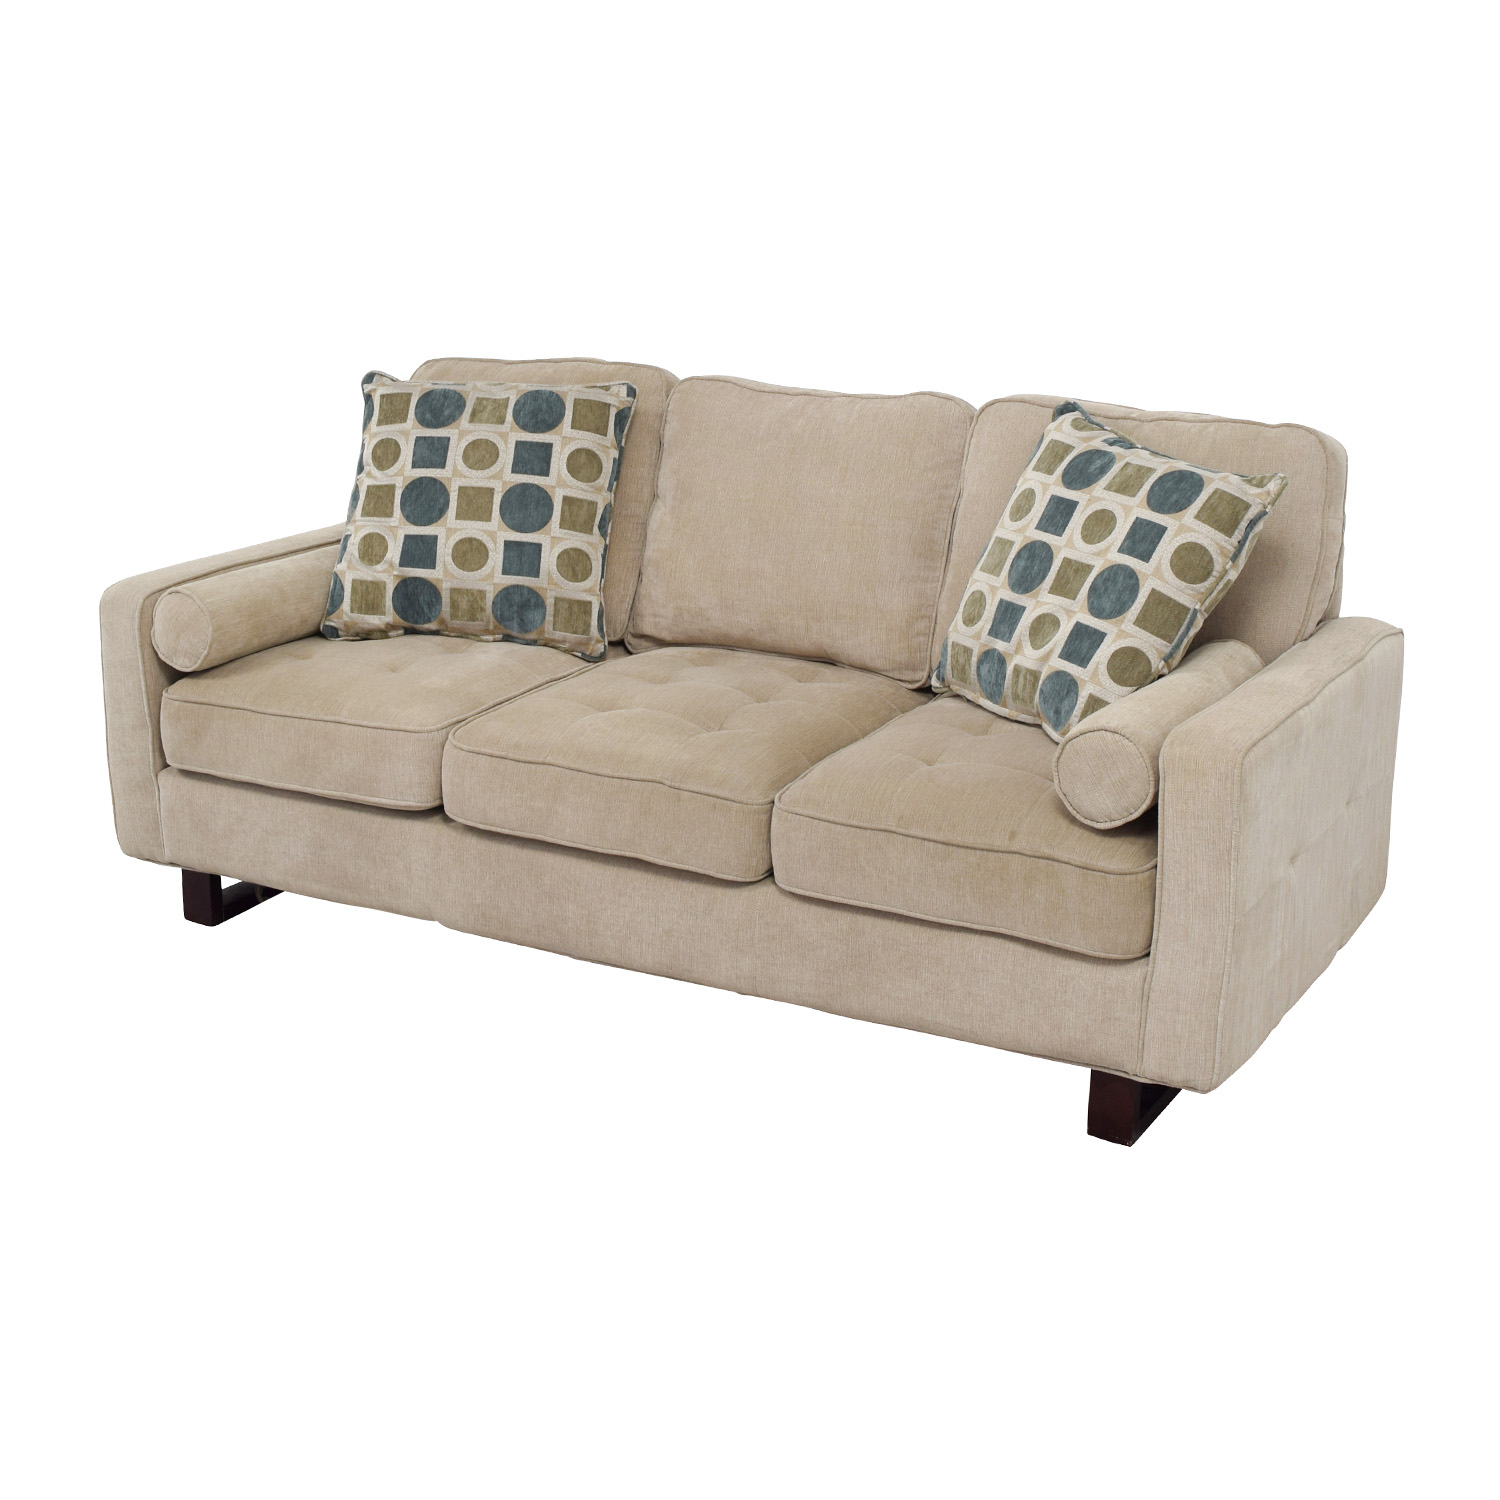 Bobs furniture discount coupon